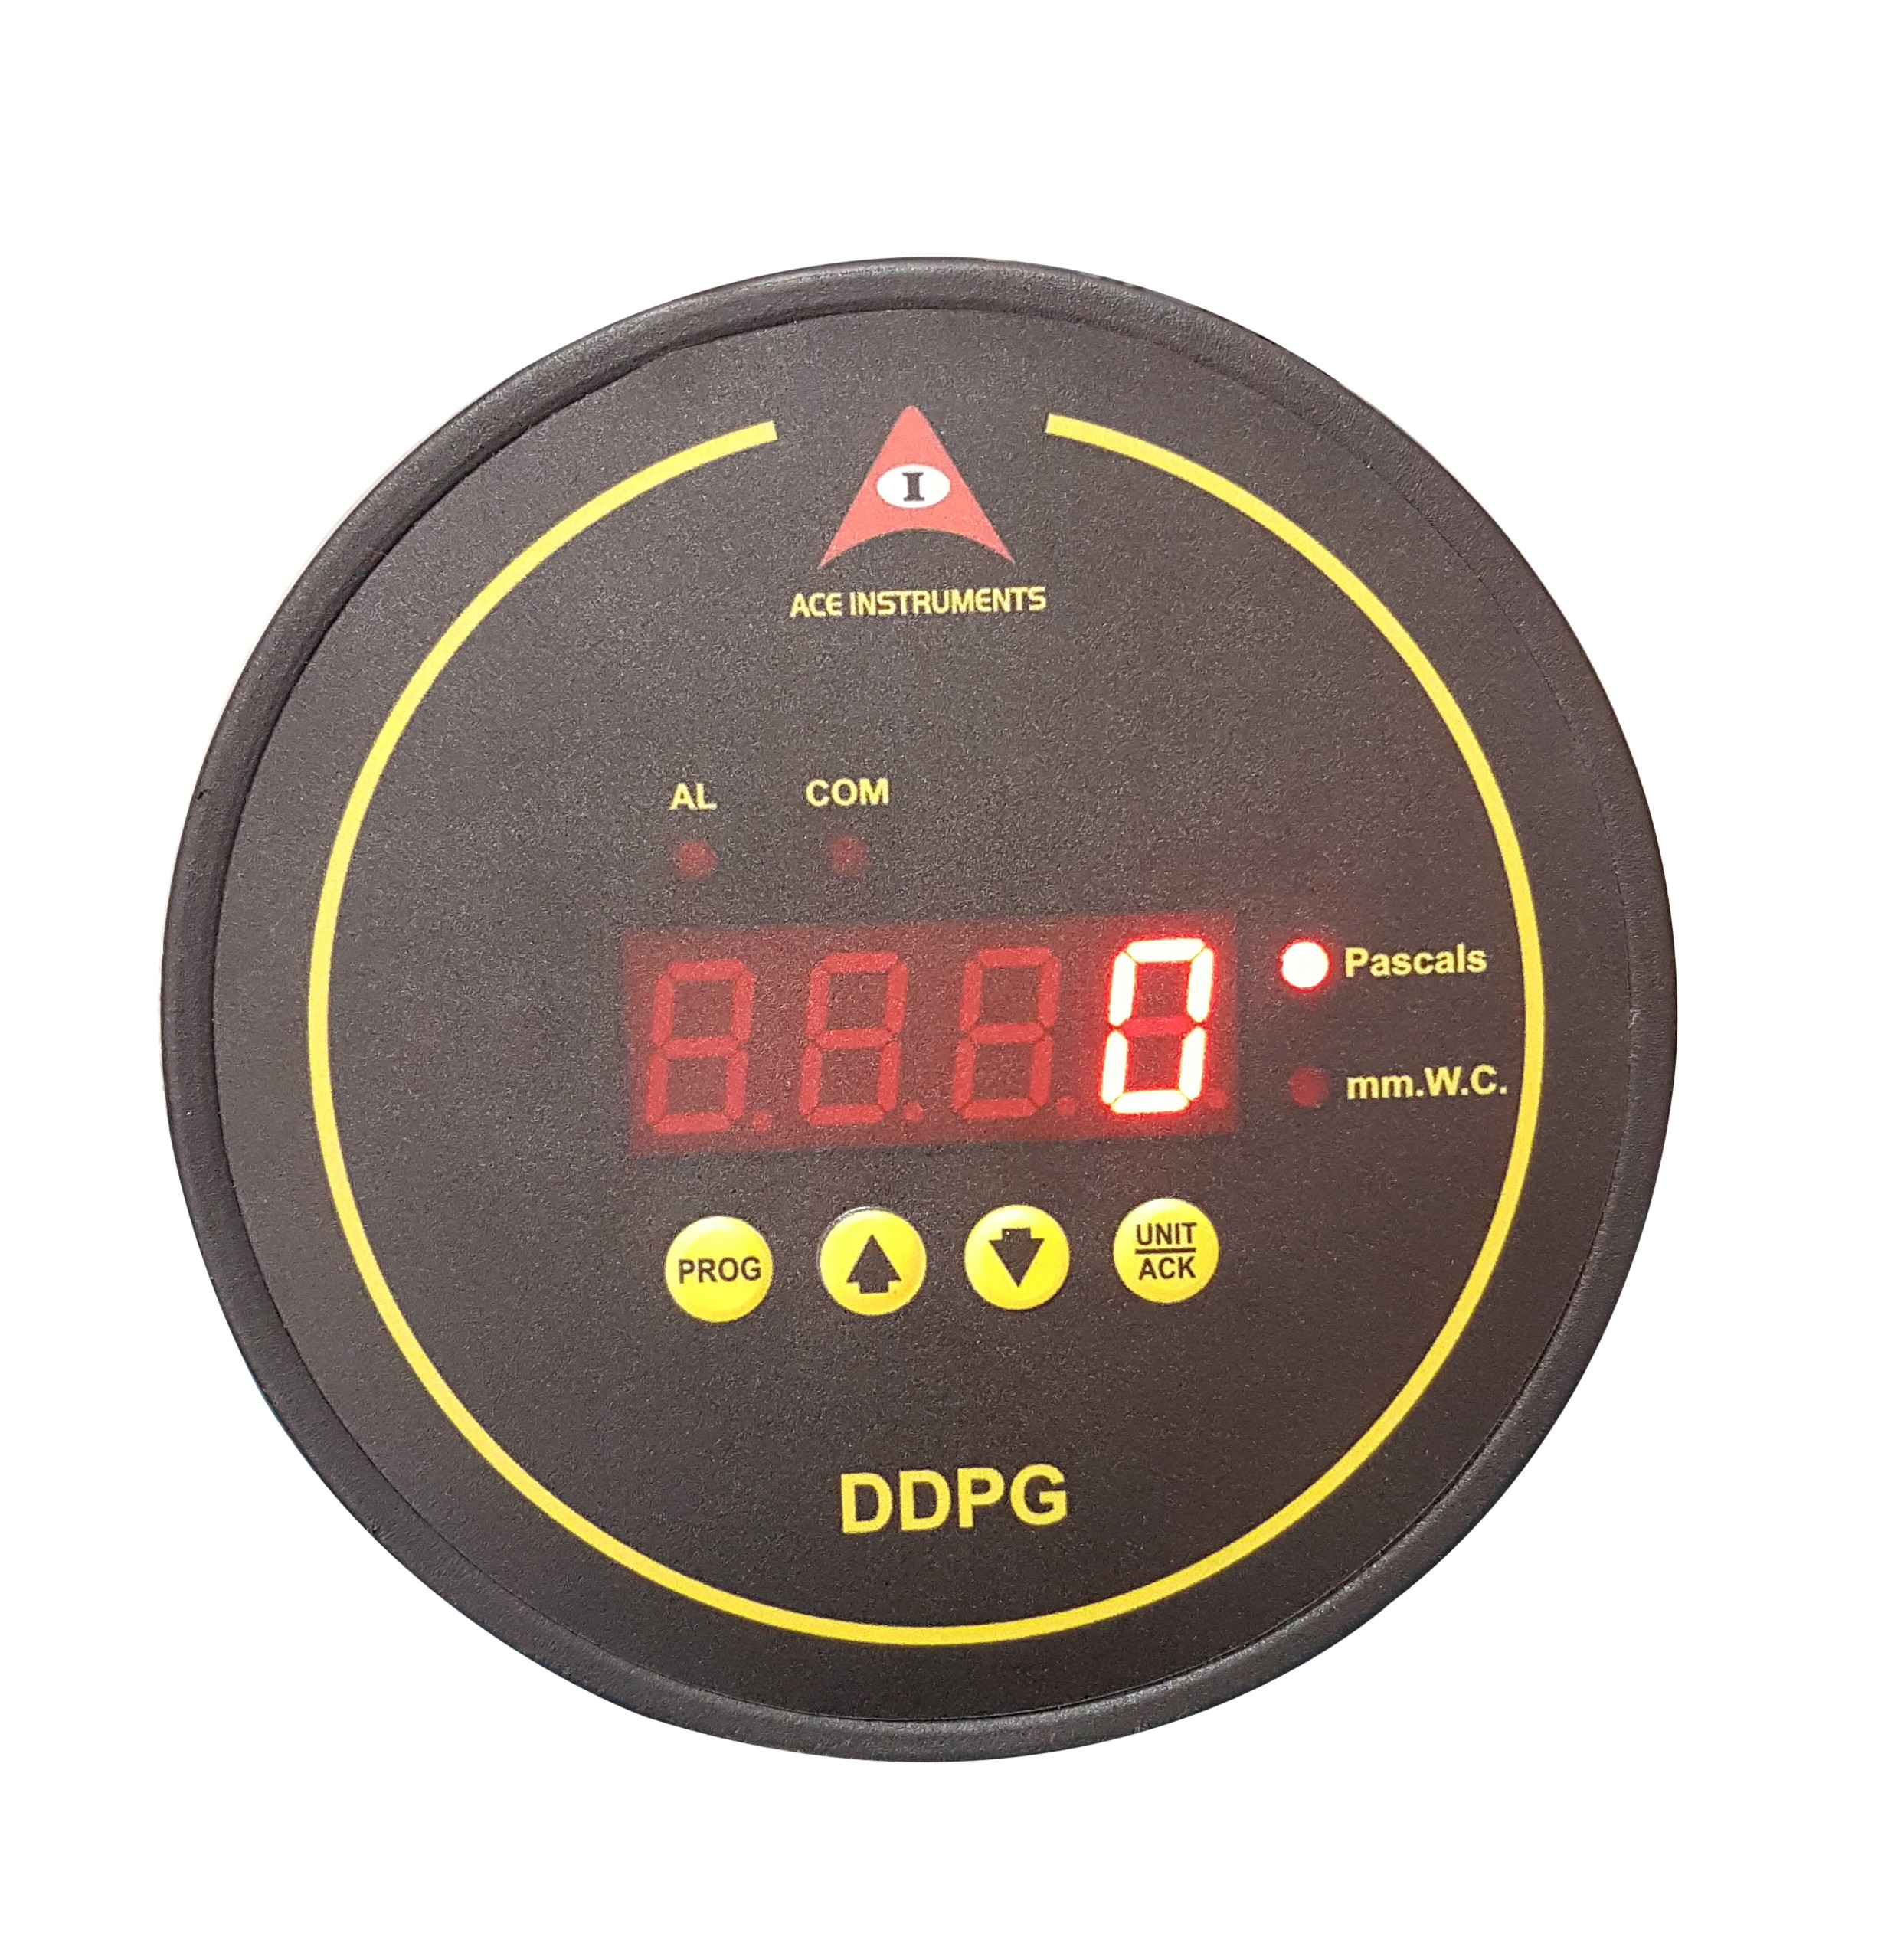 Differential Pressure Gauge, Digital Differential Pressure Gauge